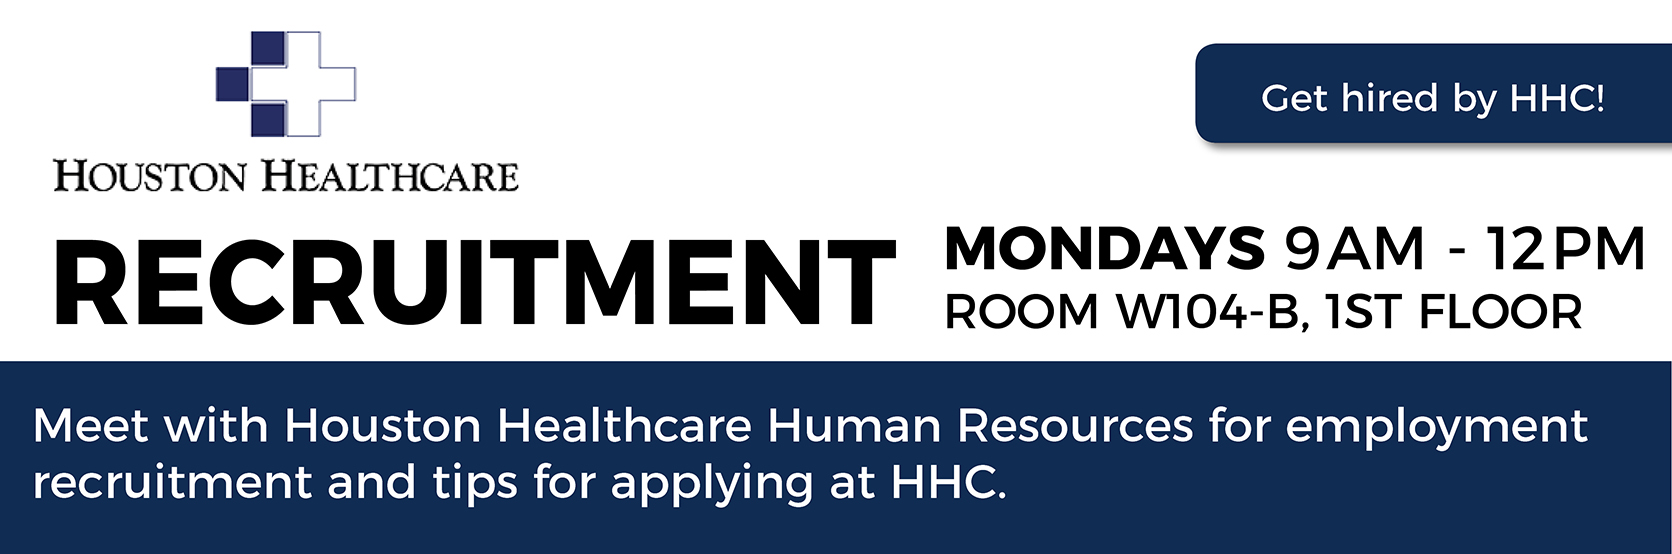 Meet with Houston Healthcare Human Resources for employment and recruitment on Mondays beginning May 1.